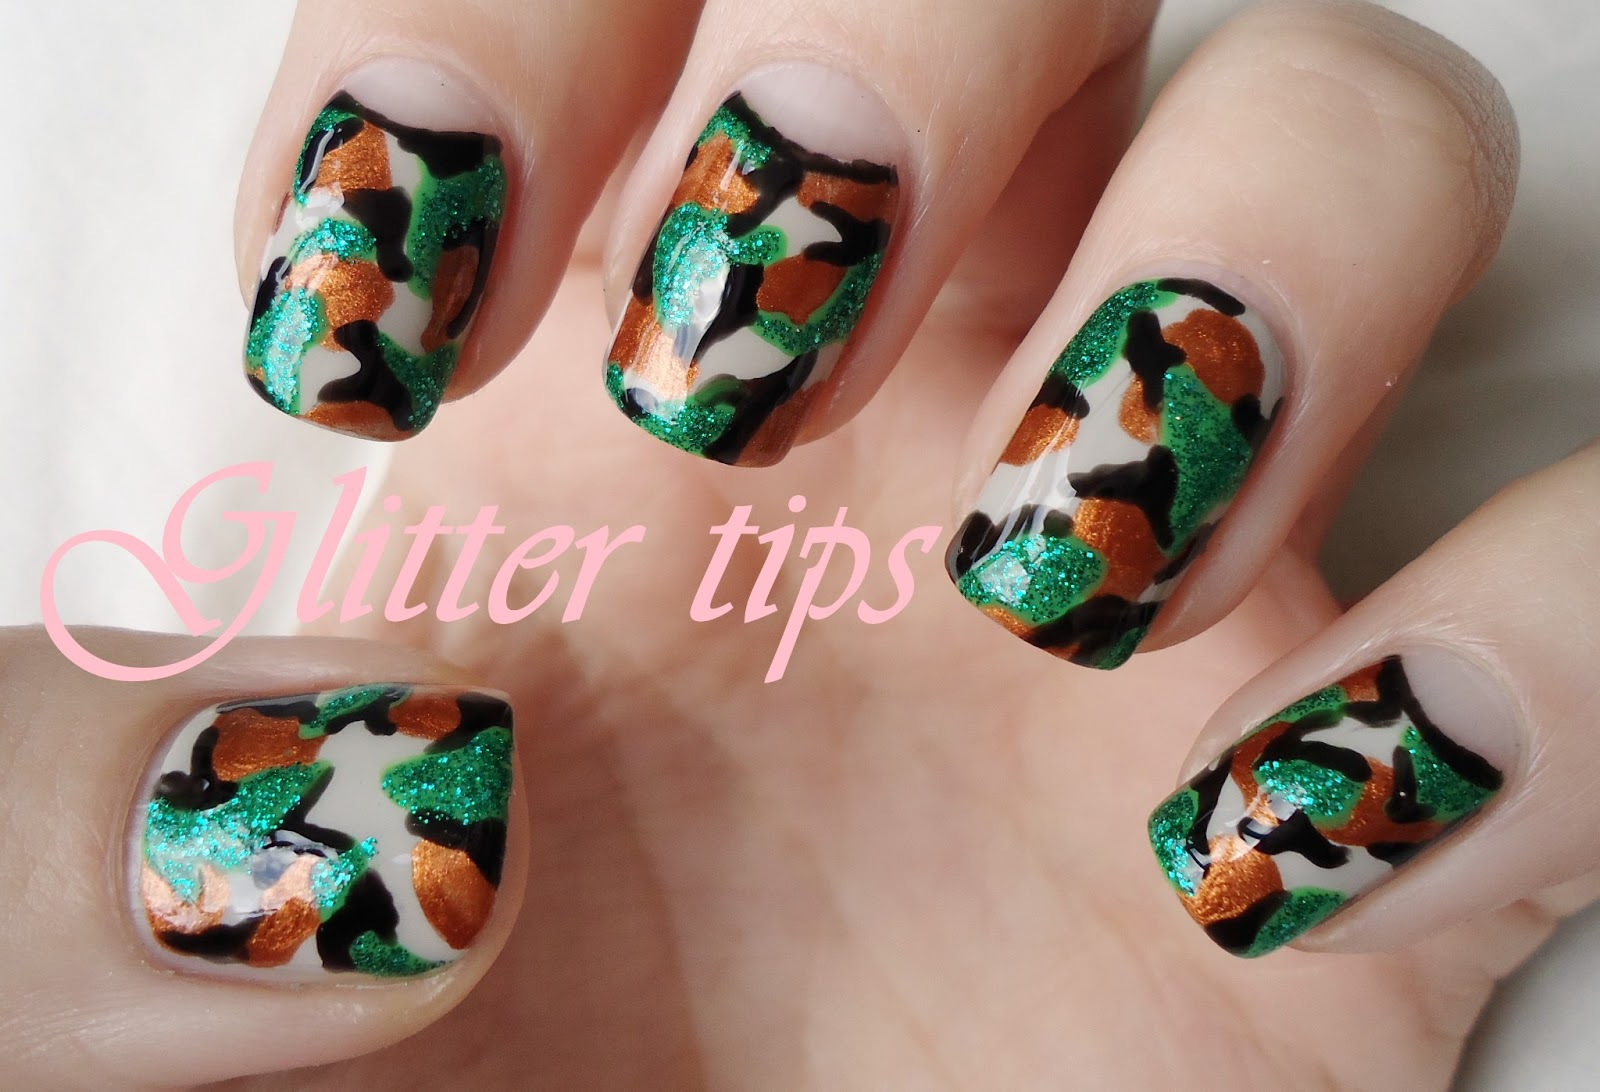 Glitter tips camouflage nail art camouflage nail art prinsesfo Choice Image